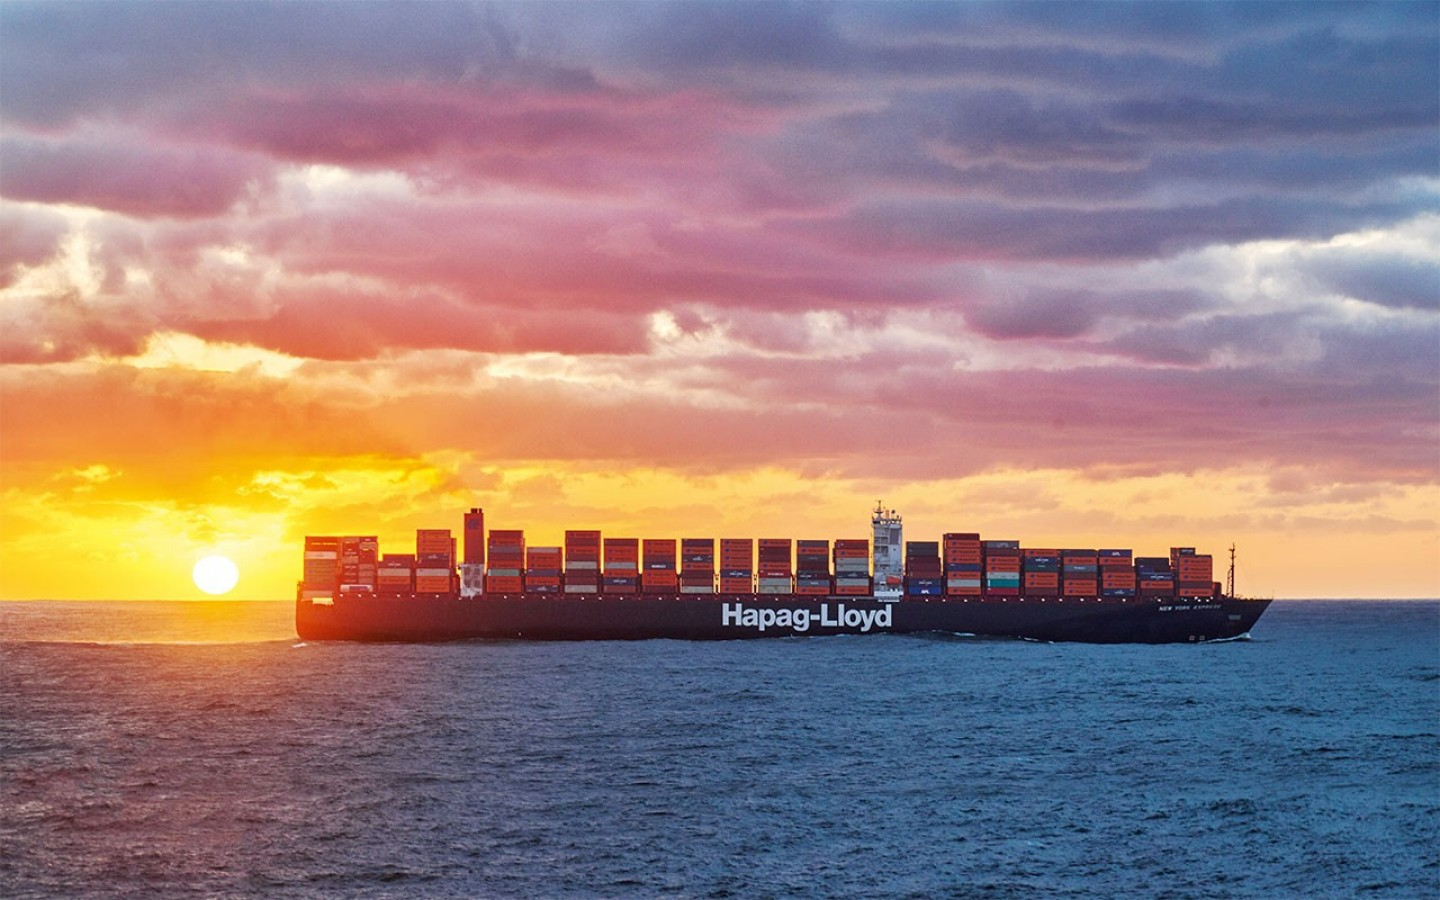 This week's top news in logistics: Hapag-Lloyd lifts profit forecast by 28%, UK government secures post-Brexit capacity, 1 in 4 tenders continue to be rejected, China opens 10 ports for crew changes, and announces screening of frozen fish amid coronavirus concerns.